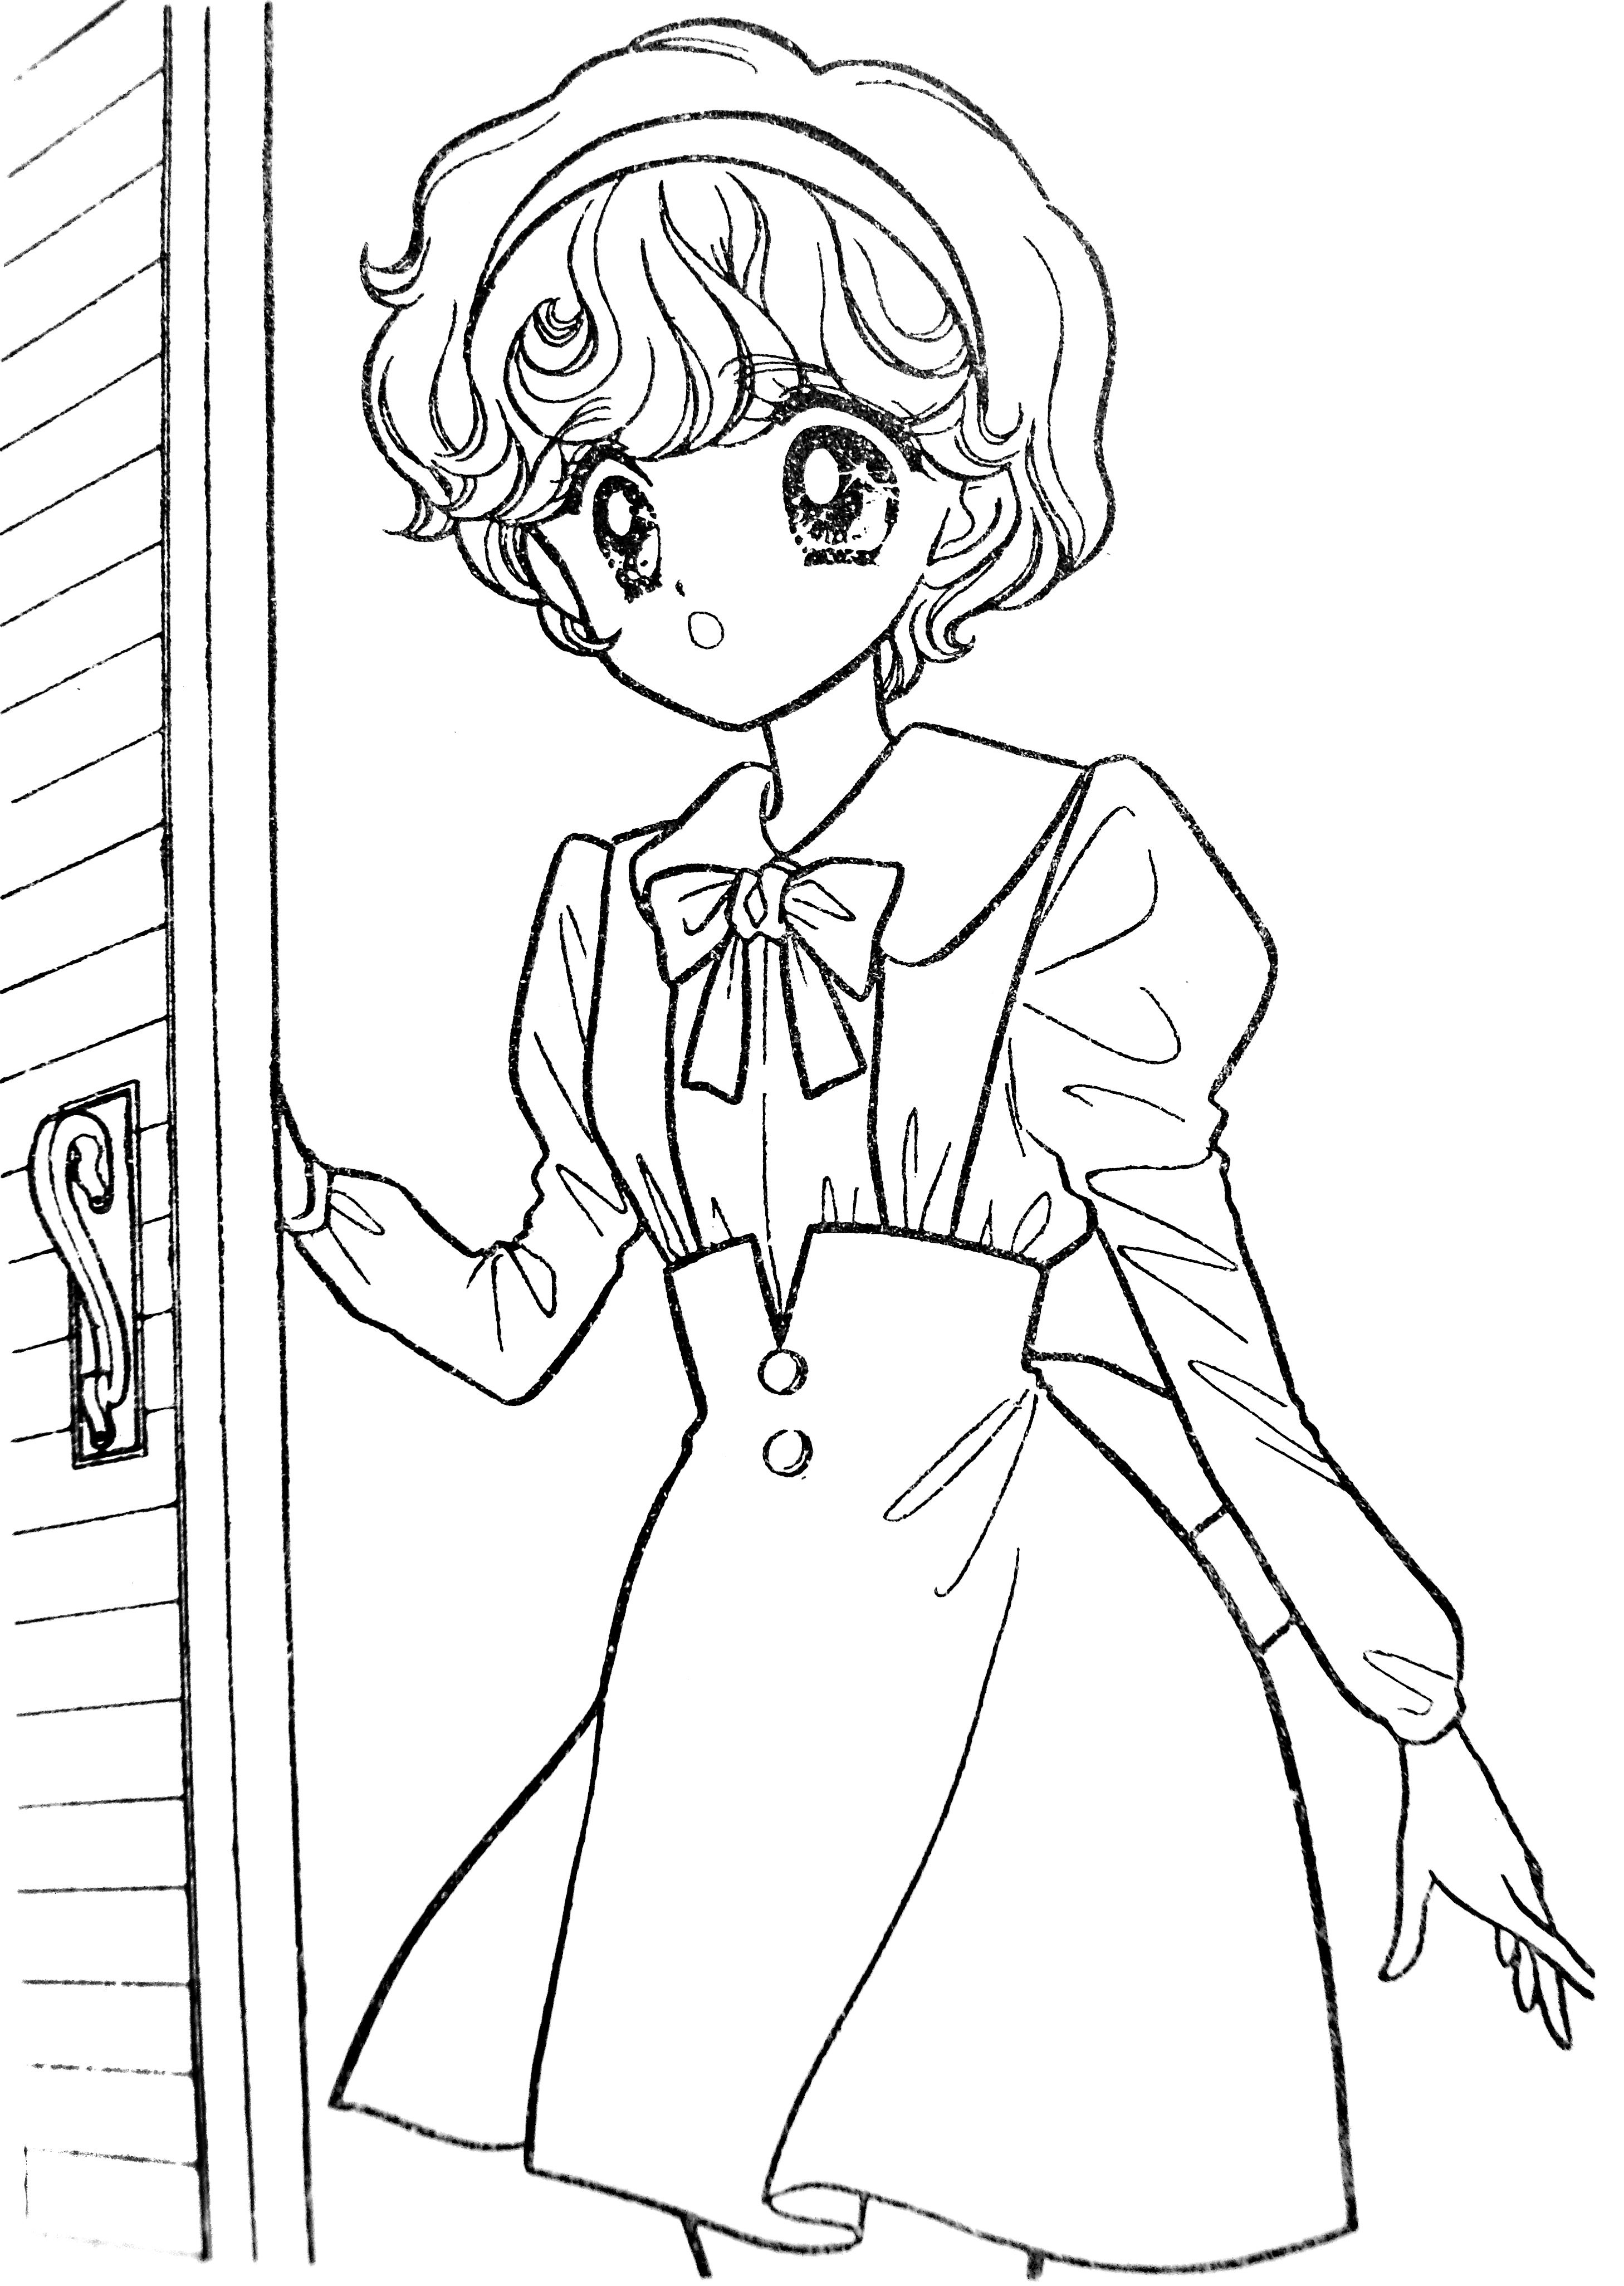 Pin By Liz On Relax With Shojo Manga Coloring Books Vintage Coloring Books Cute Coloring Pages [ 4104 x 2916 Pixel ]